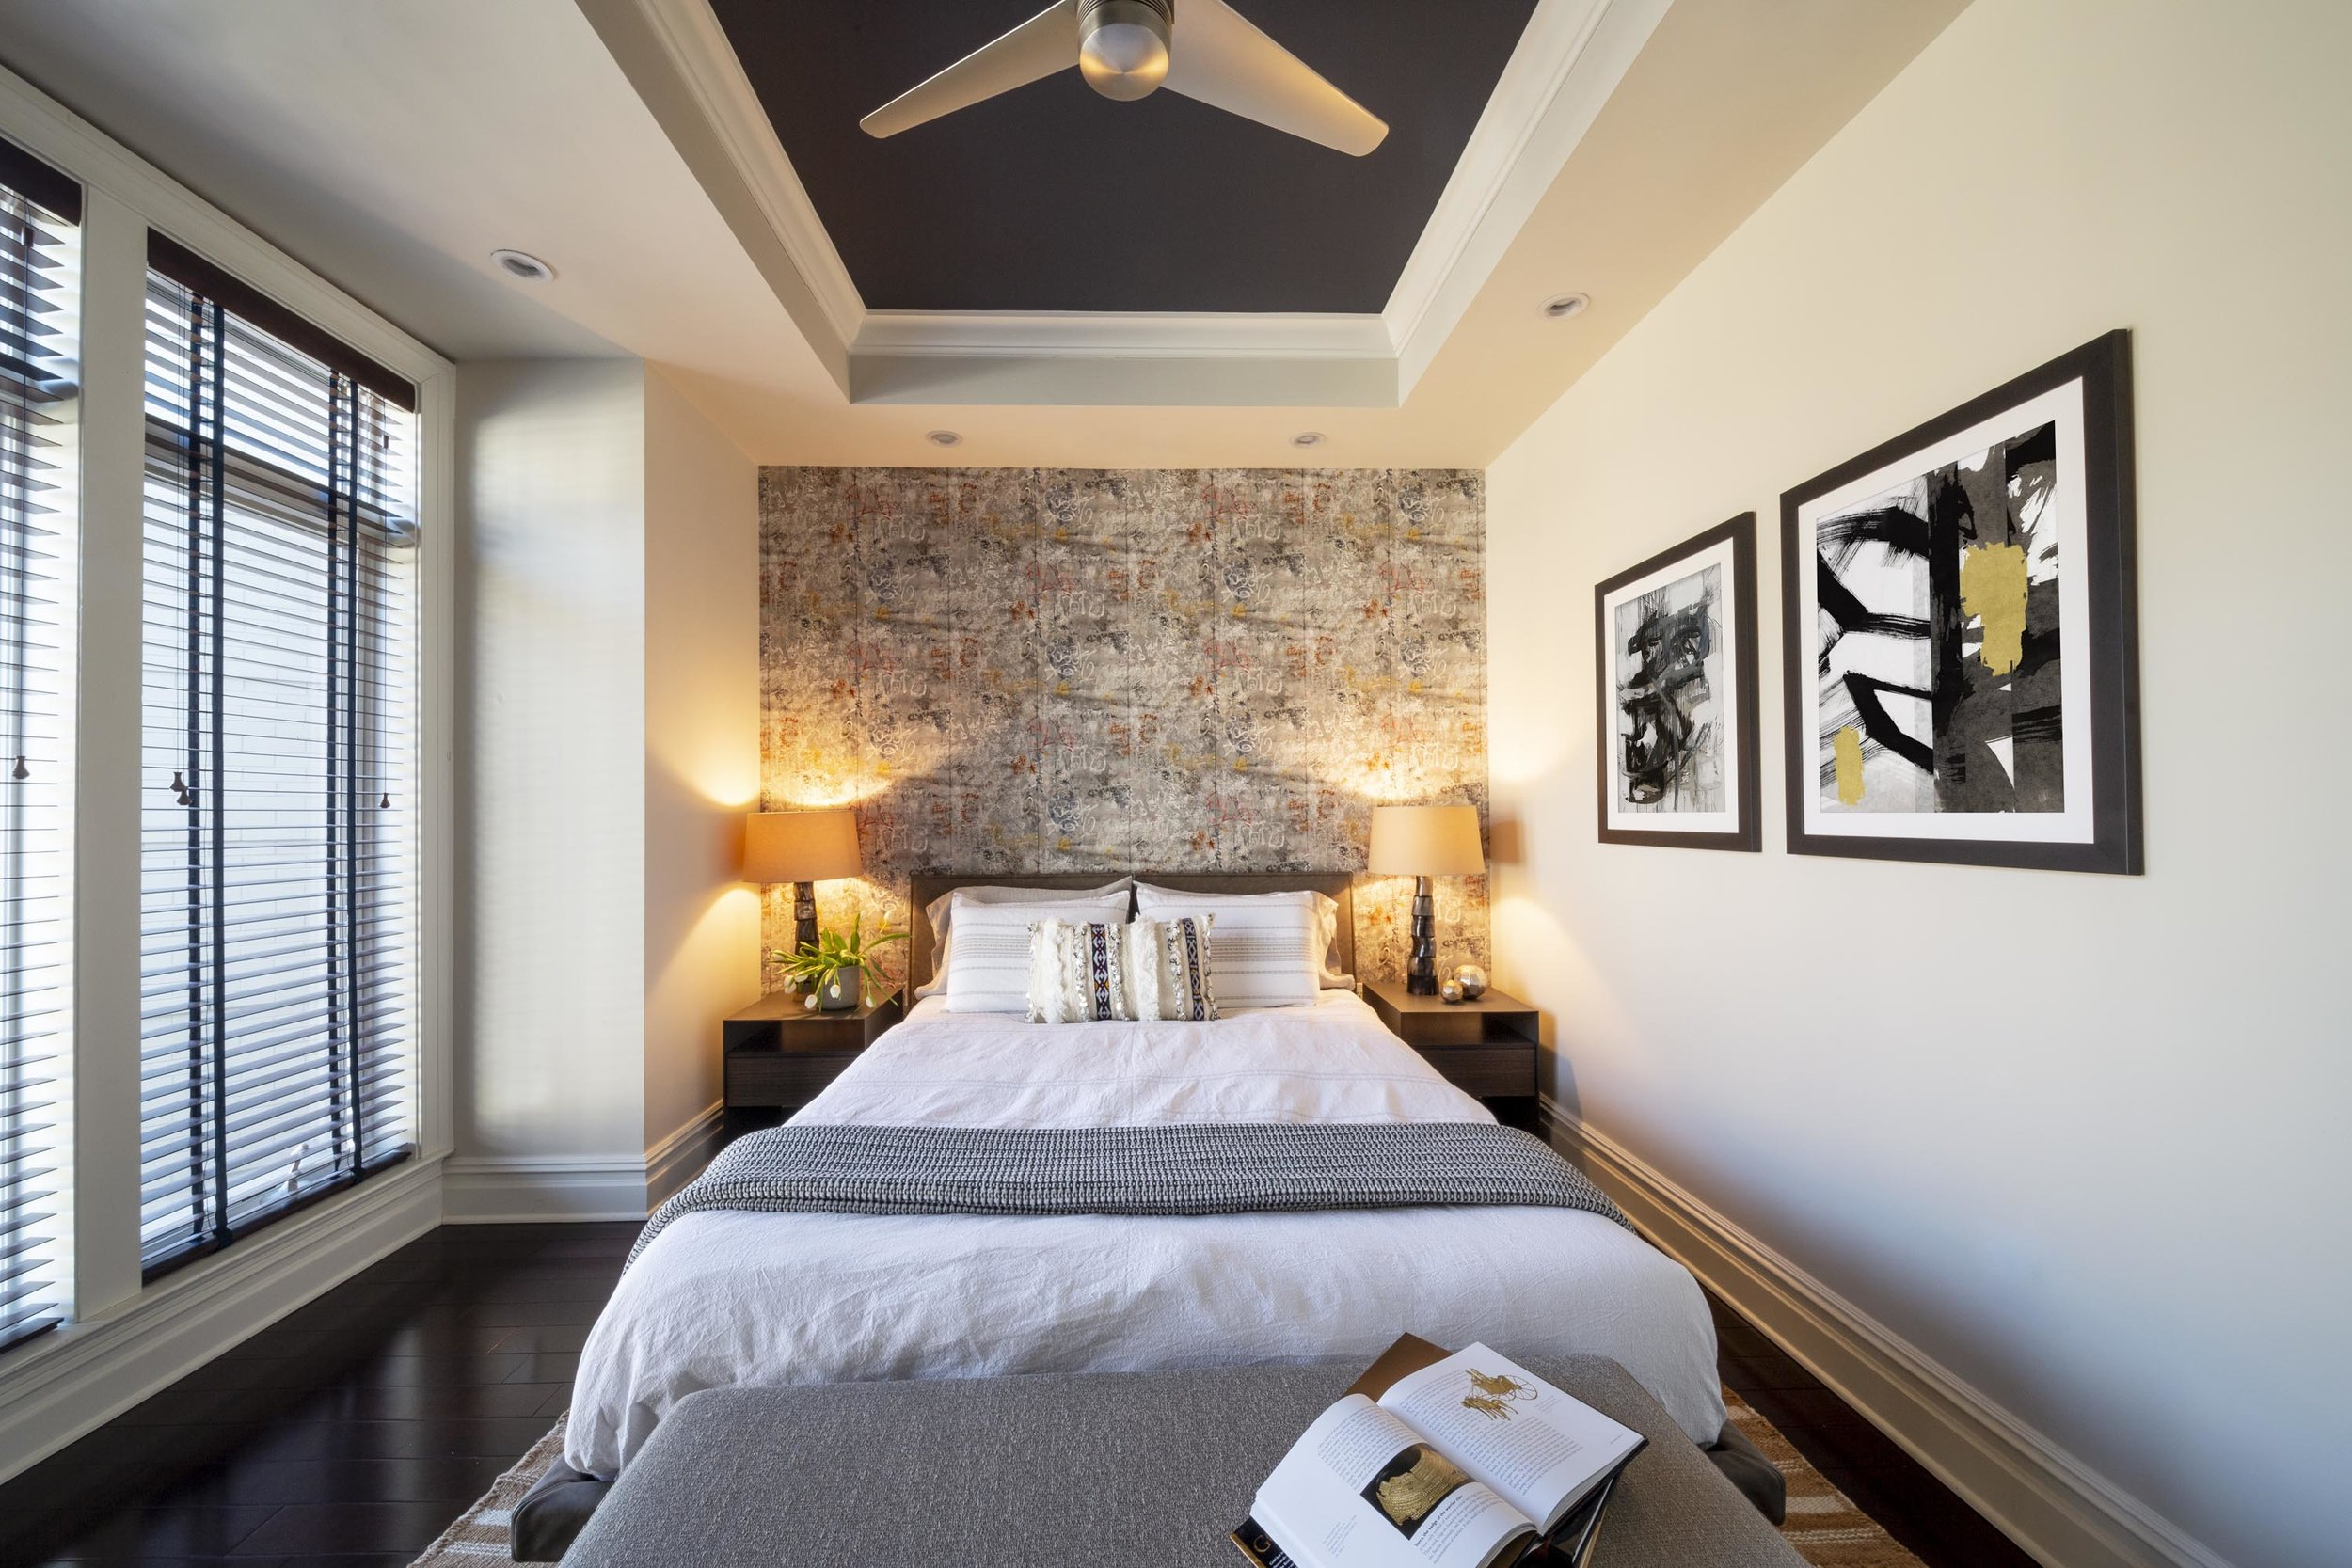 Bedroom with bed, bed bench, bedside tables, table lamps, artwork on the wall, ceiling fan, window with window blinds and hardwood floor